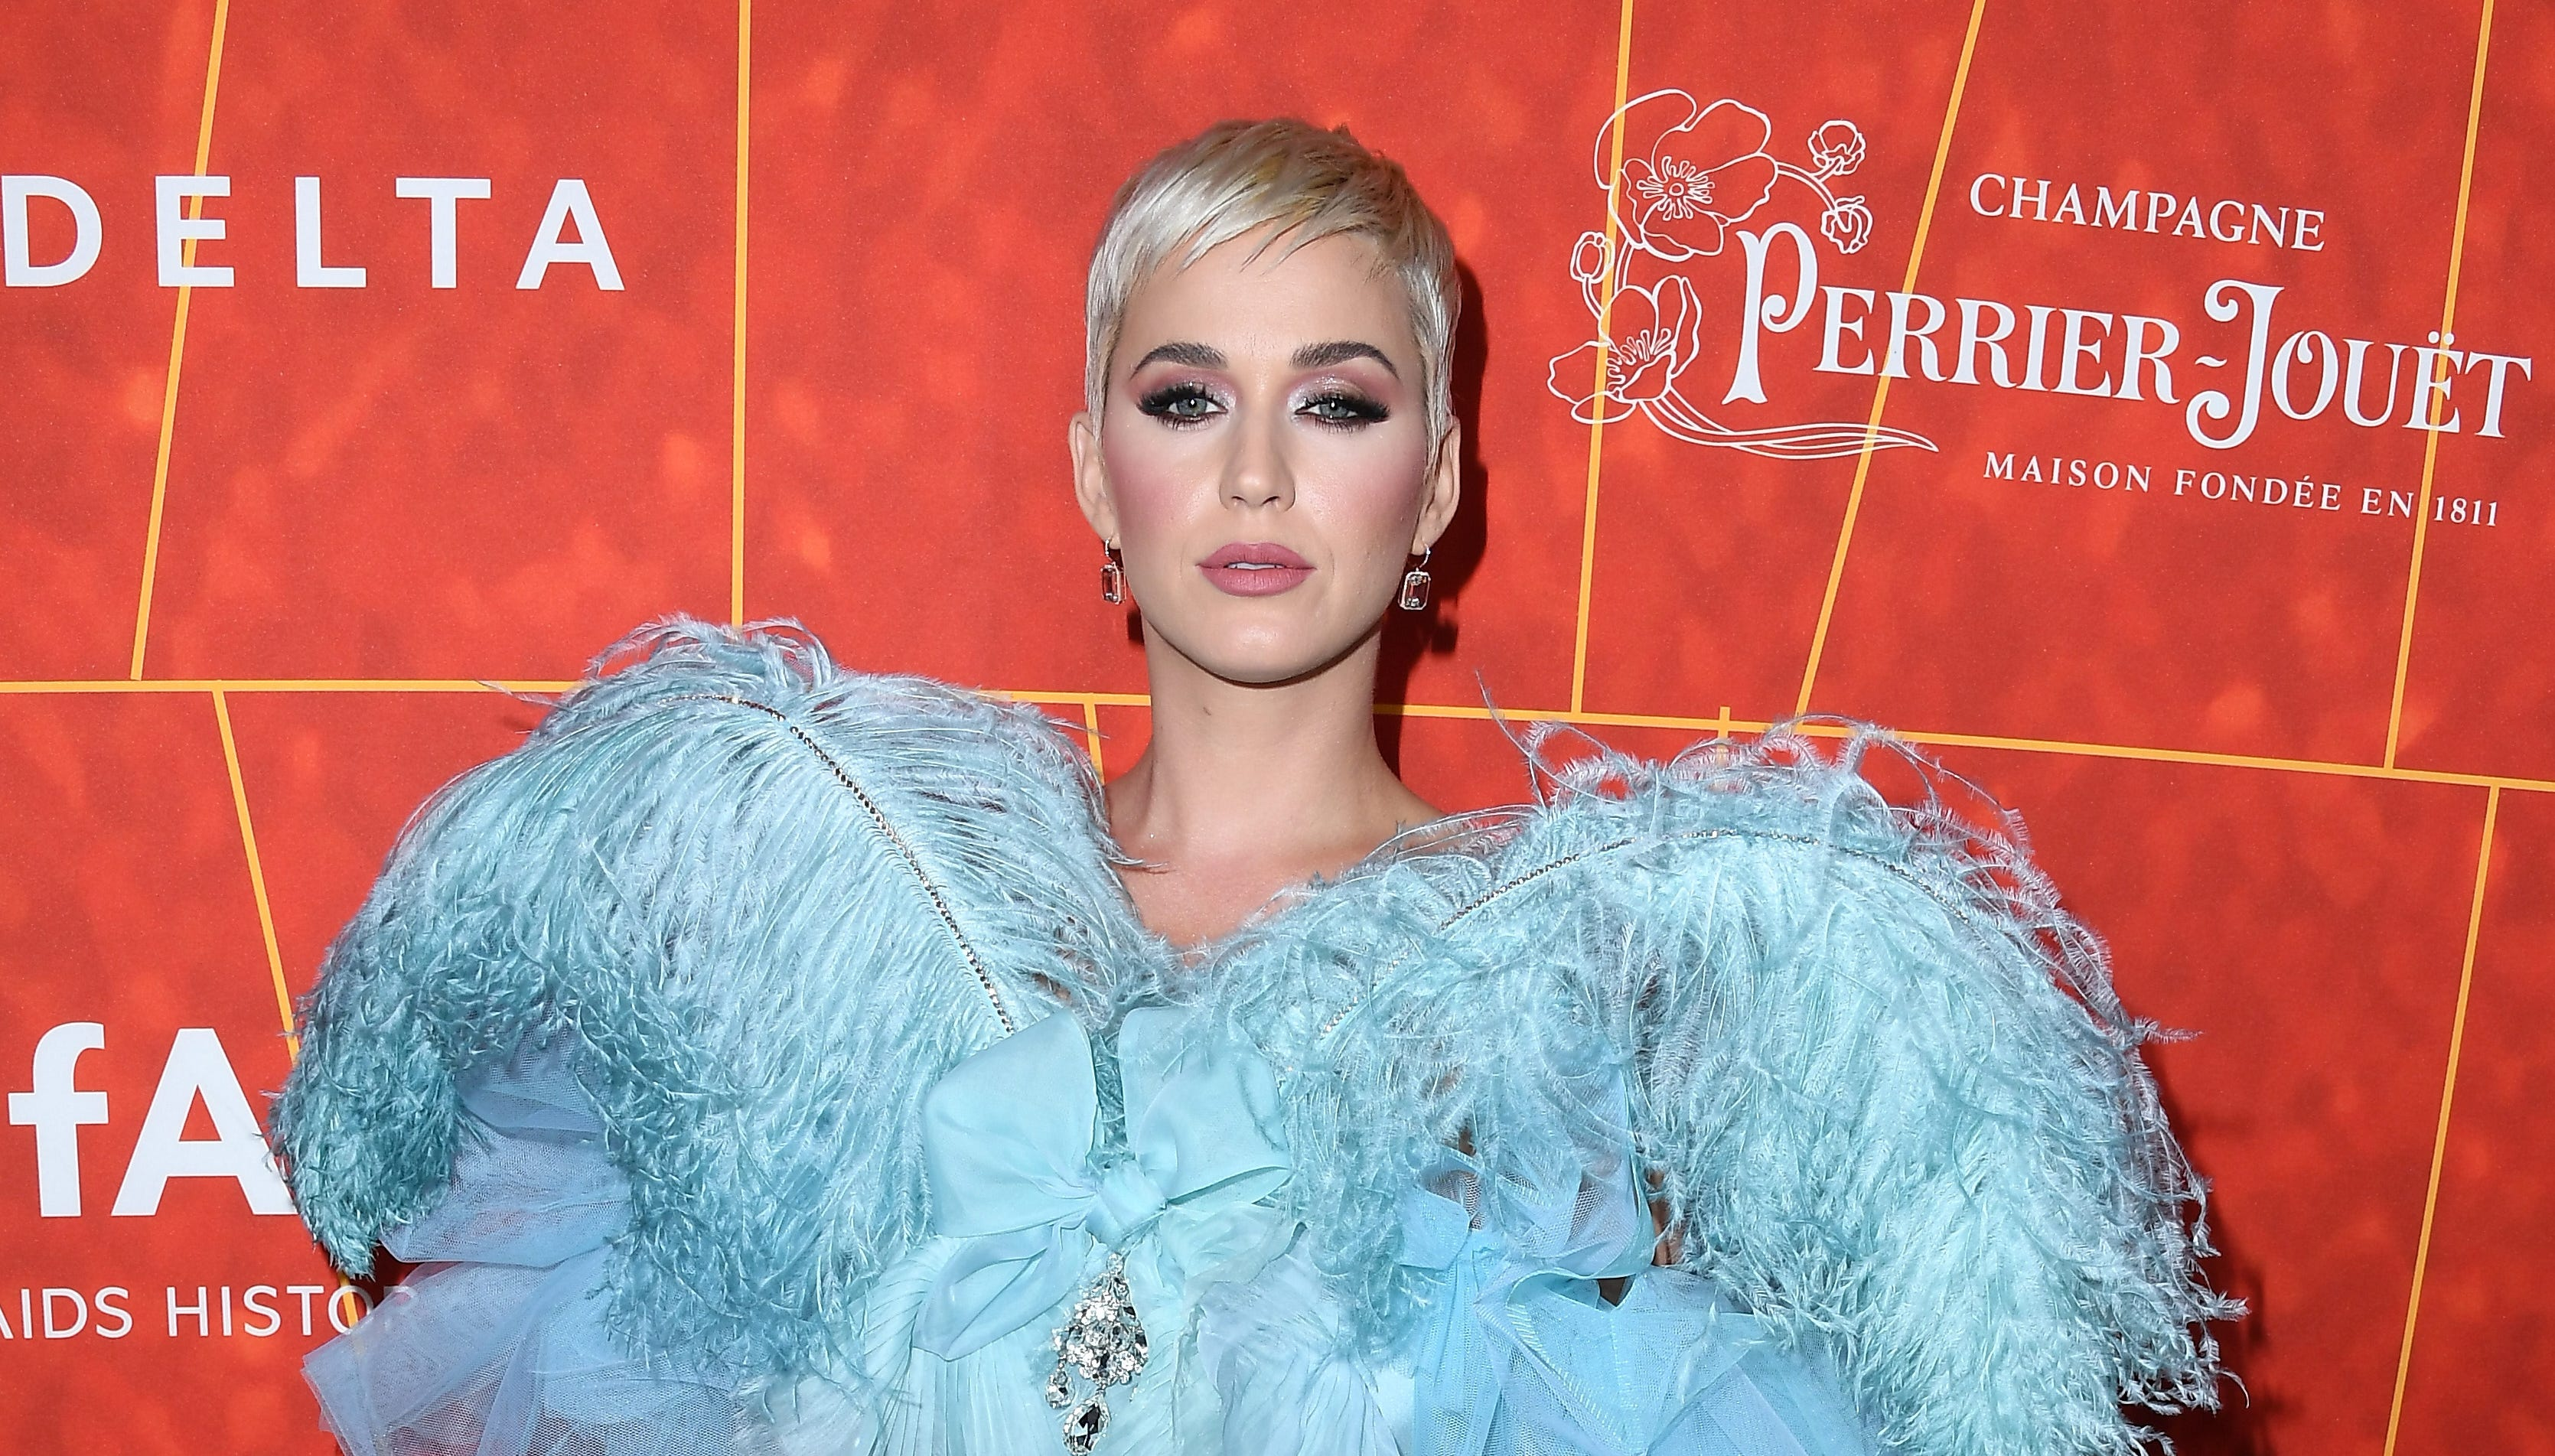 Katy Perry Suggests Donald Trump's Heartless & # 39; calif